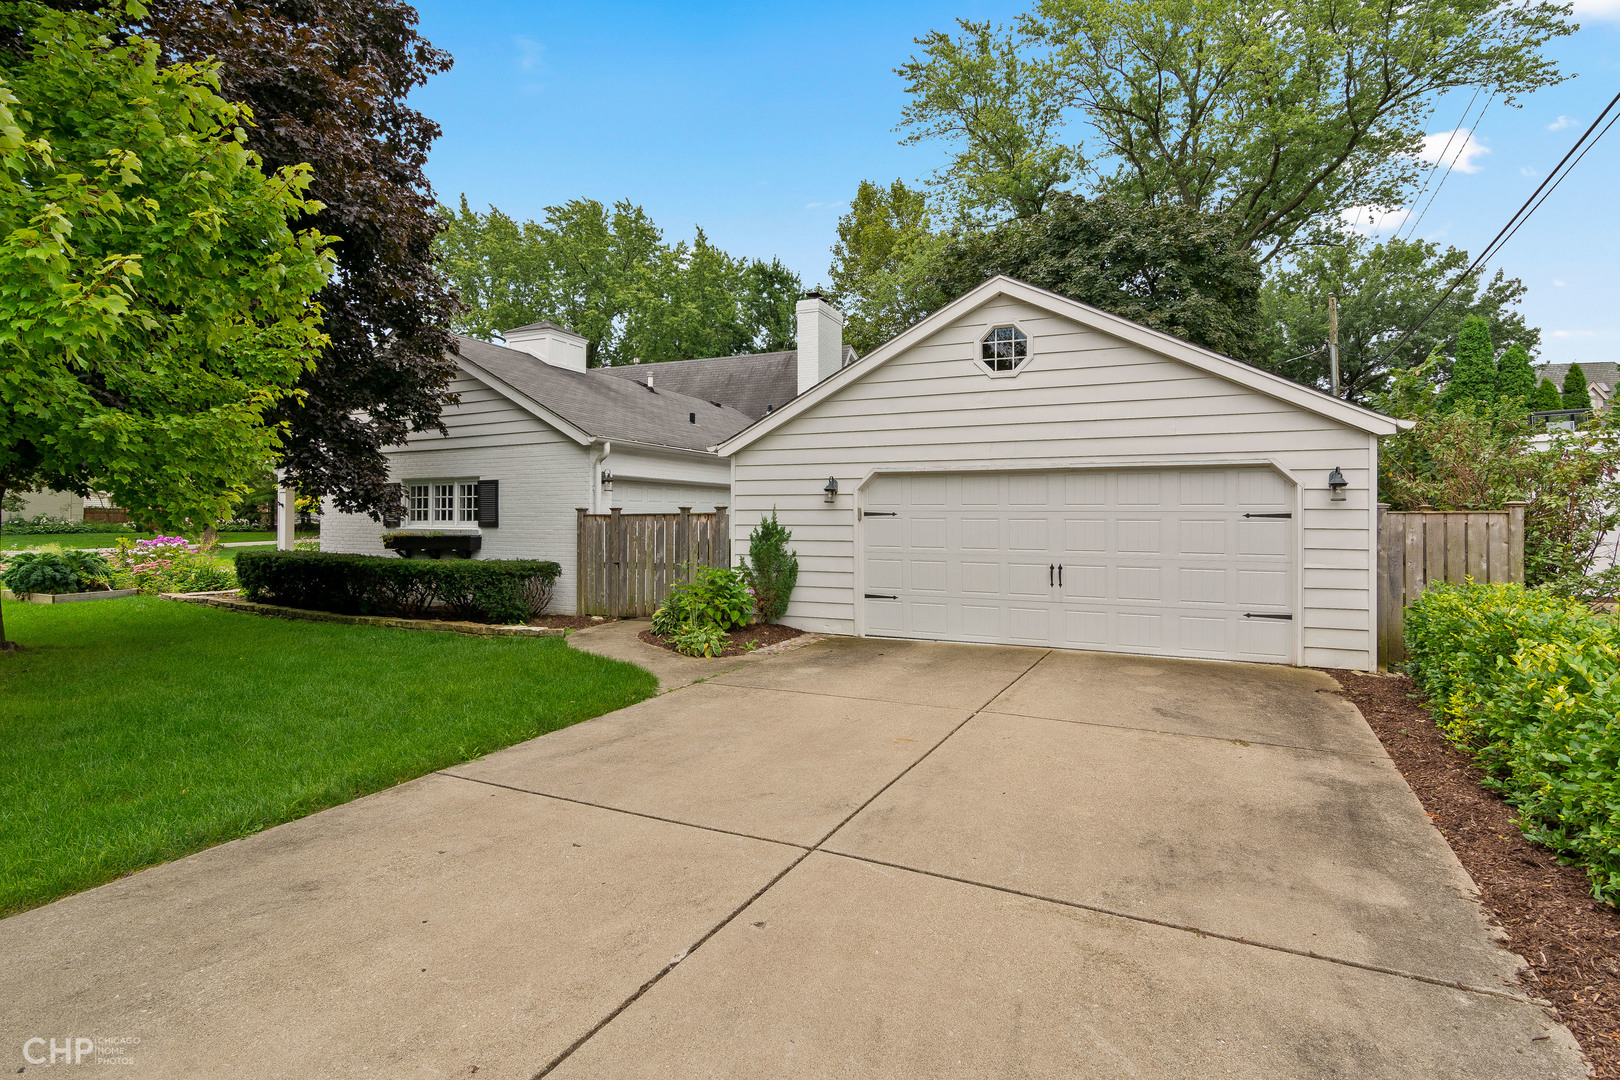 800 West Hickory, Hinsdale, Illinois, 60521